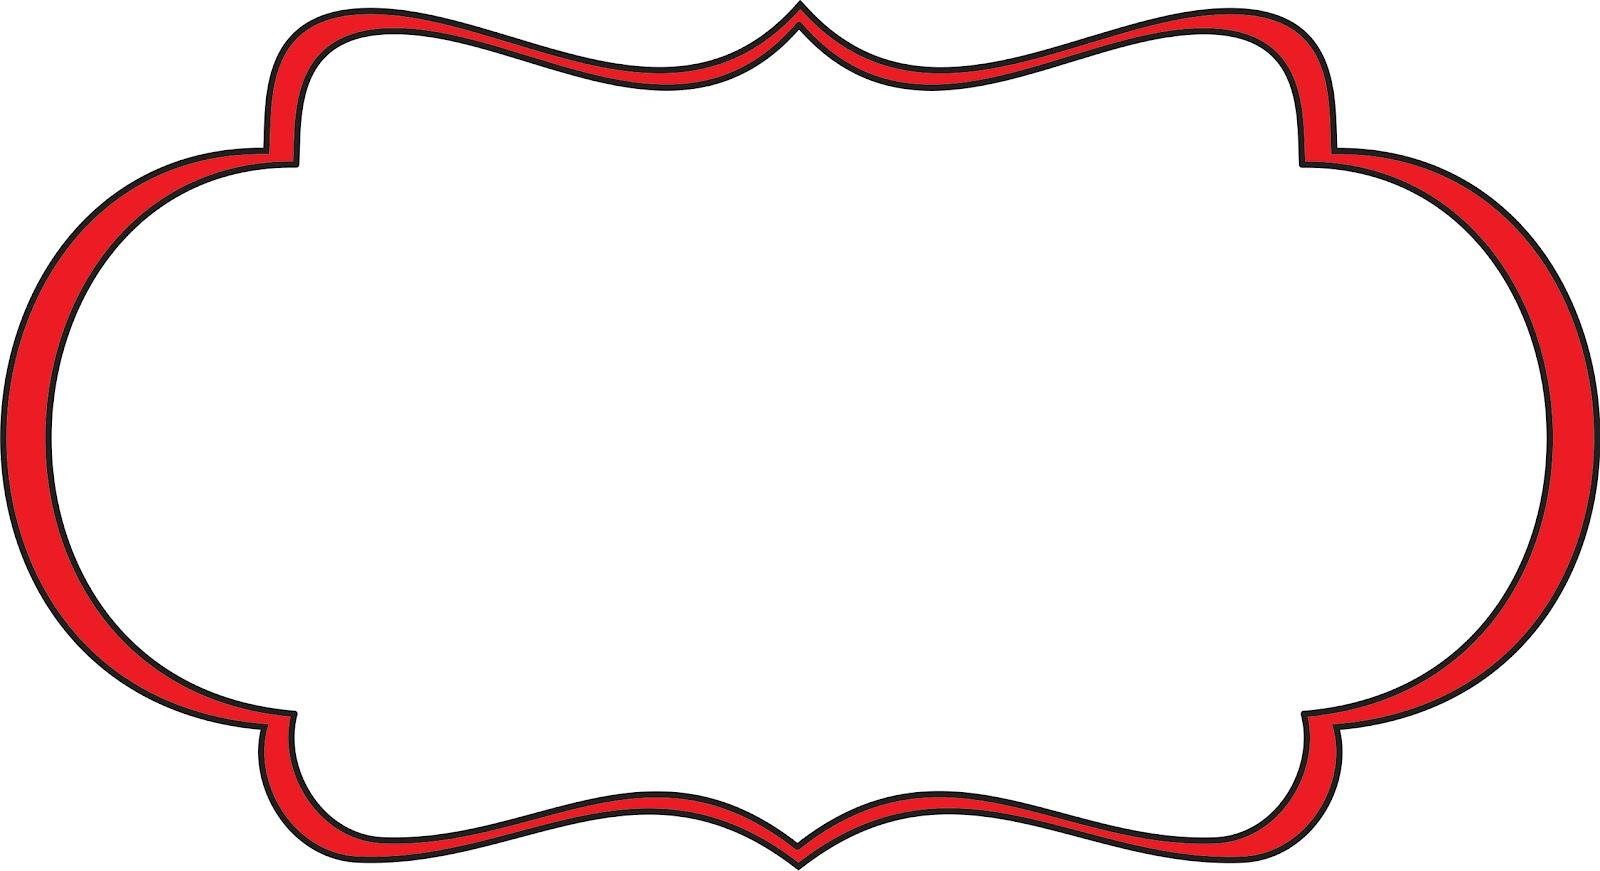 border clipart at getdrawings com free for personal use border rh getdrawings com border clip art images free border clip art borders